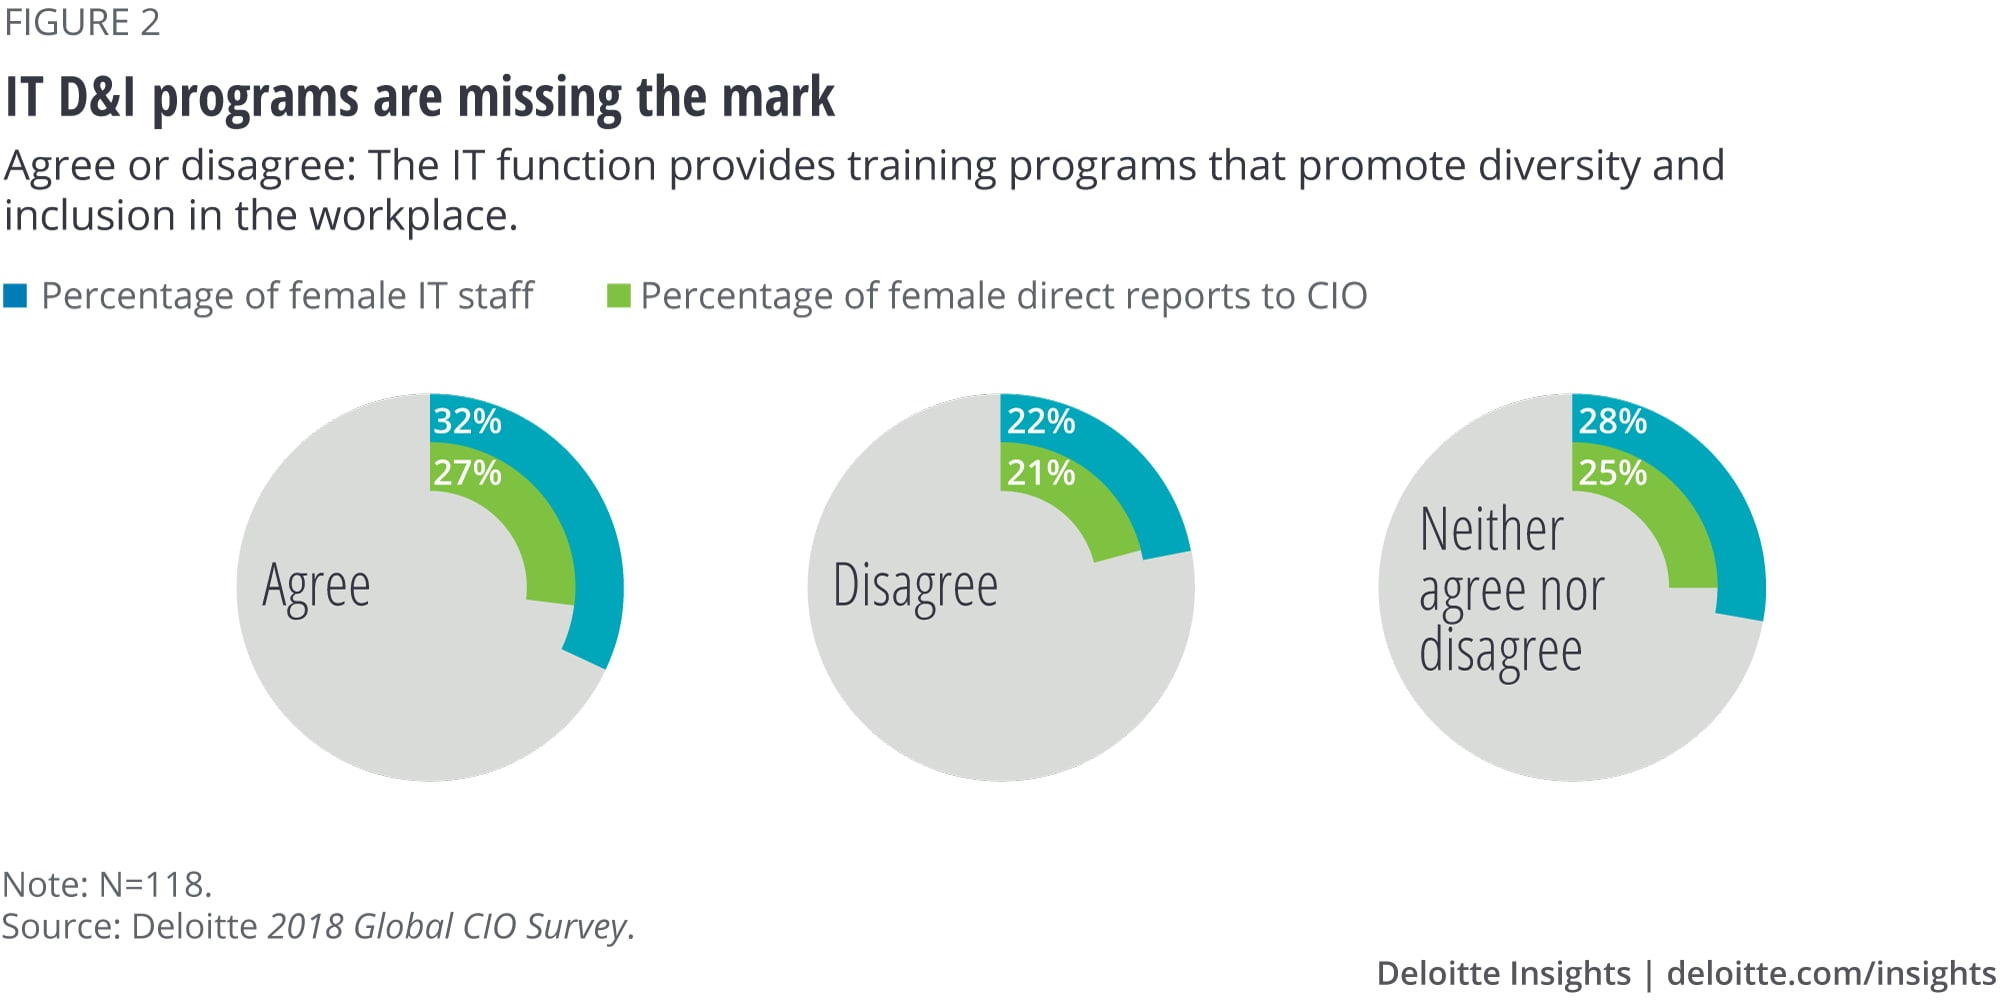 IT D&I programs are missing the mark